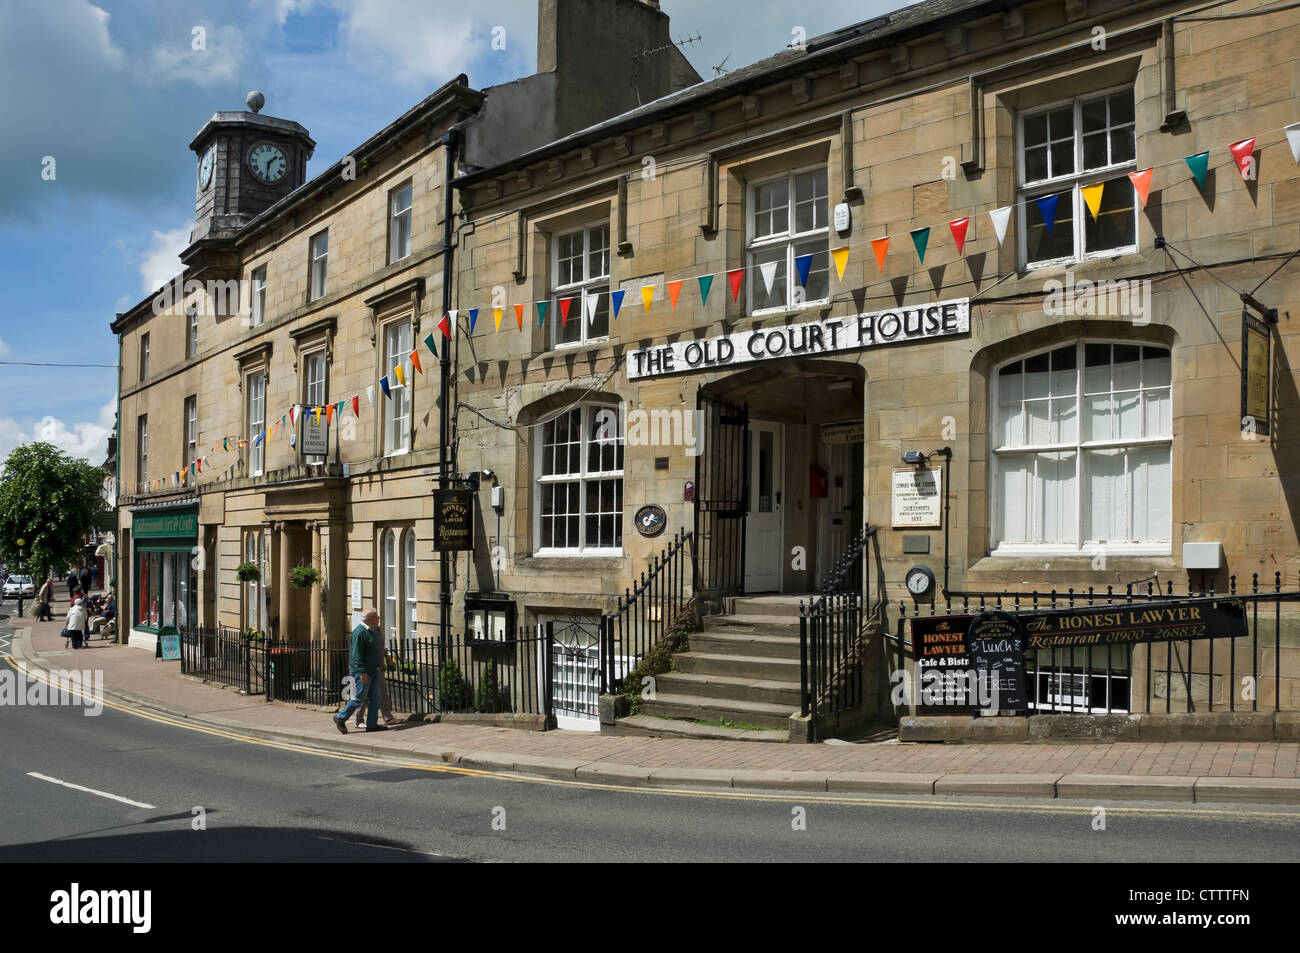 The Old Court House Main Street Cockermouth Cumbria England UK United Kingdom GB Great Britain - Stock Image